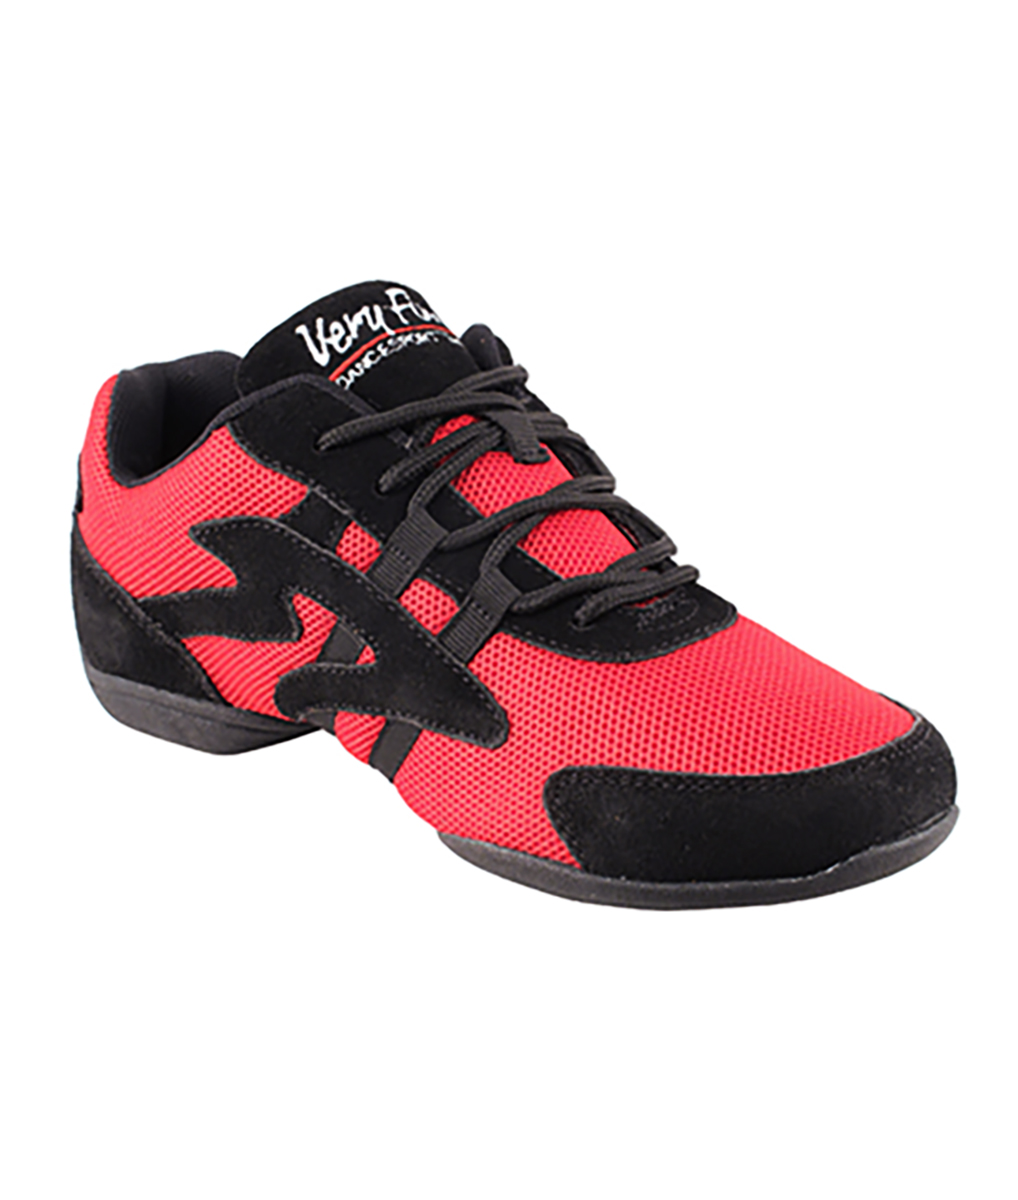 Very Fine Dance Sneakers - VFSN012 - Red size 10 B(M) US Women / 8.5 D(M) US Men